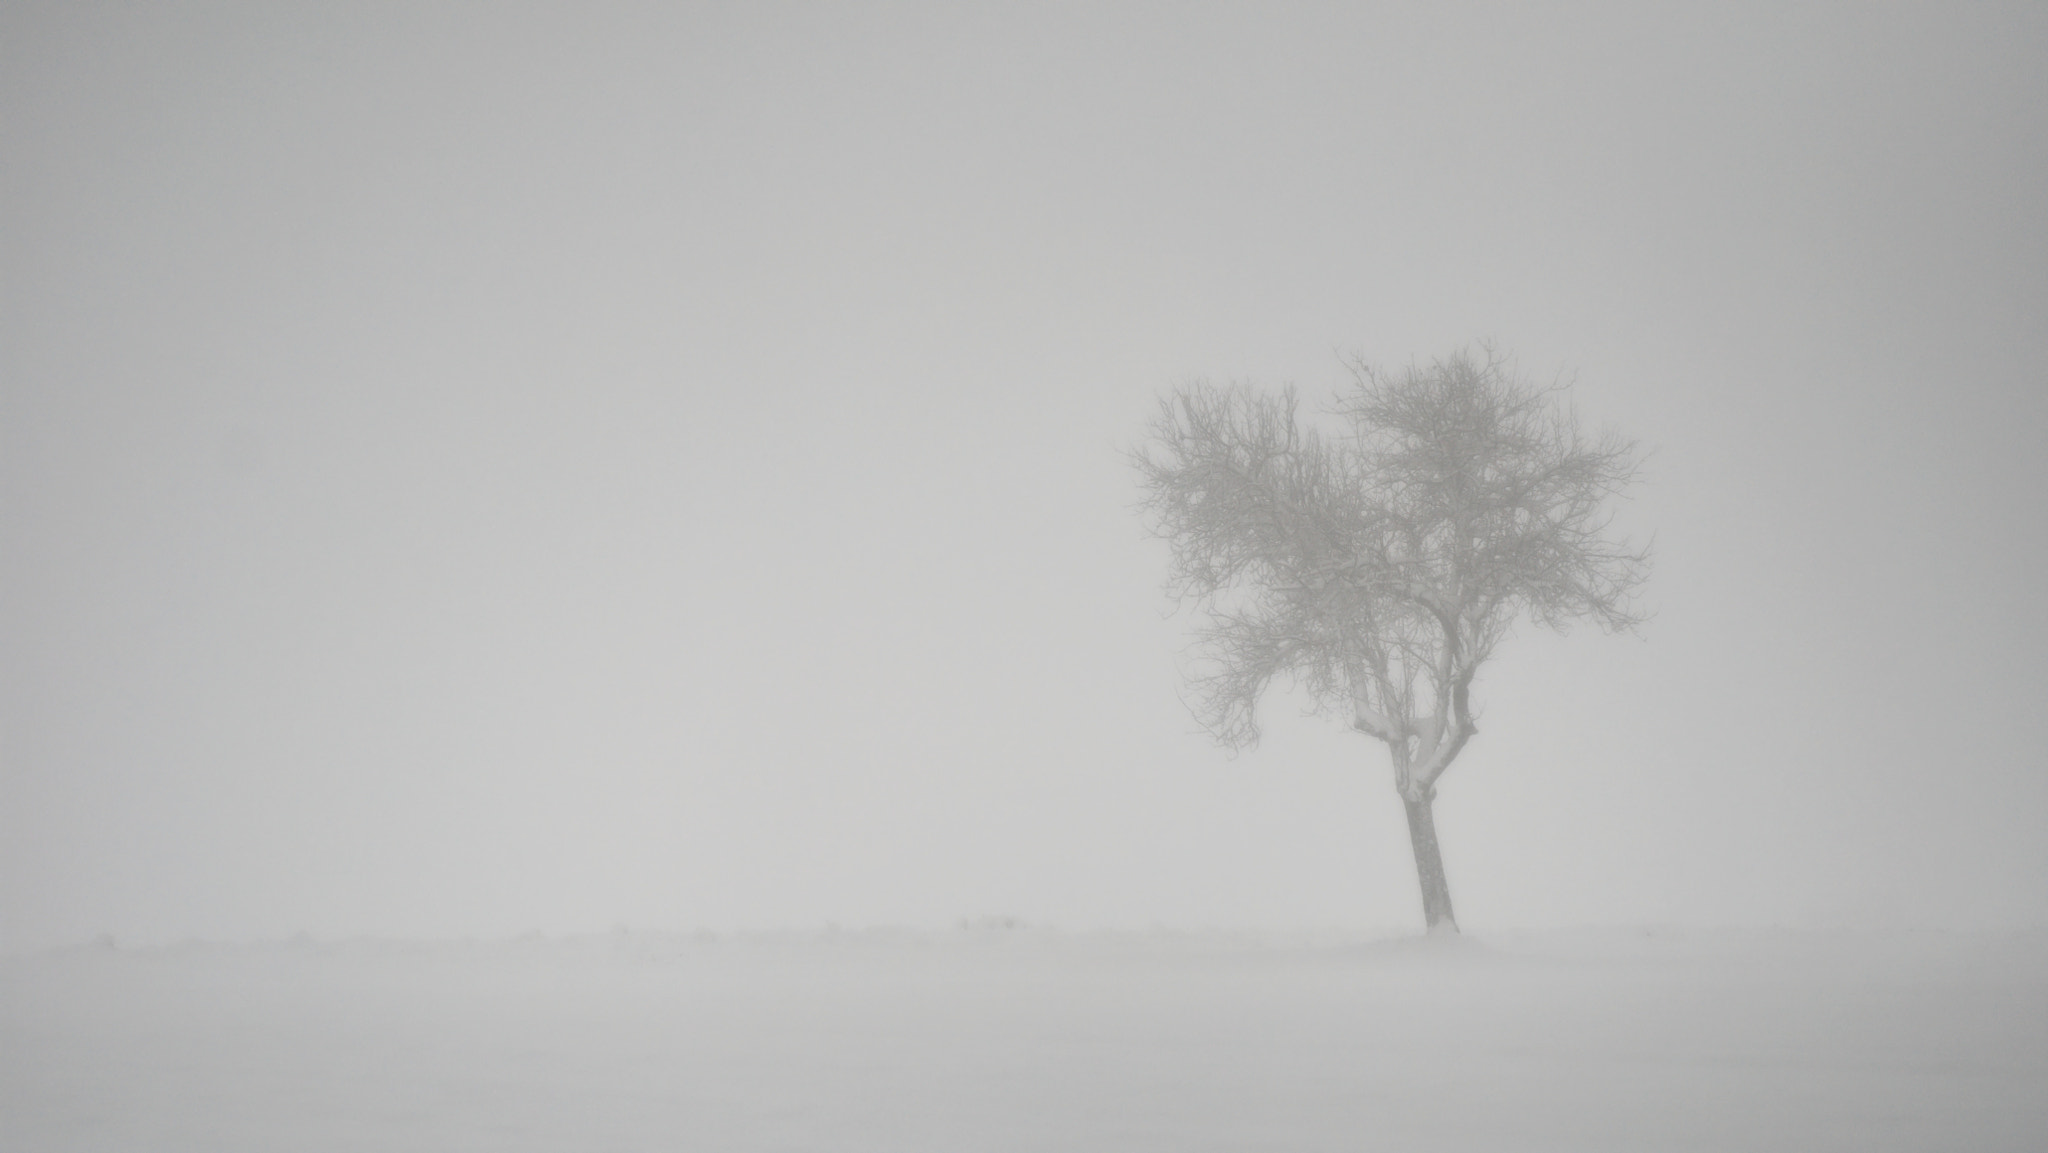 Photograph Tree, snow and fog by Alex  on 500px